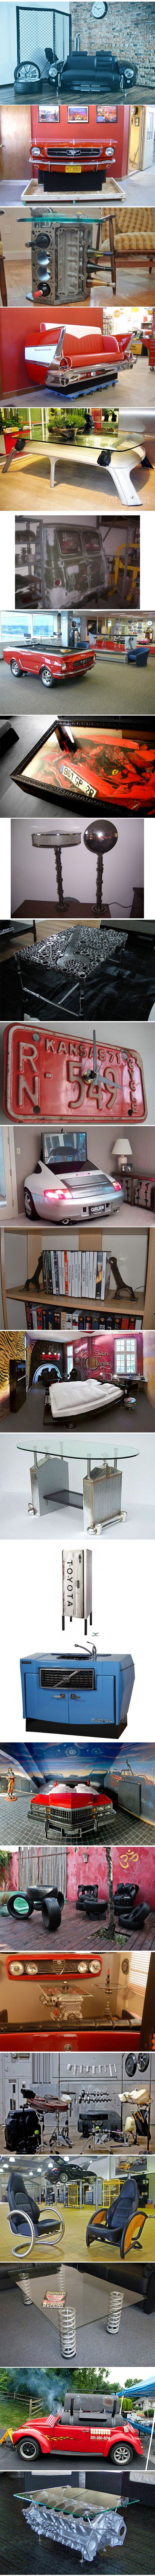 Best 25+ Car part furniture ideas on Pinterest | Ford car parts ...